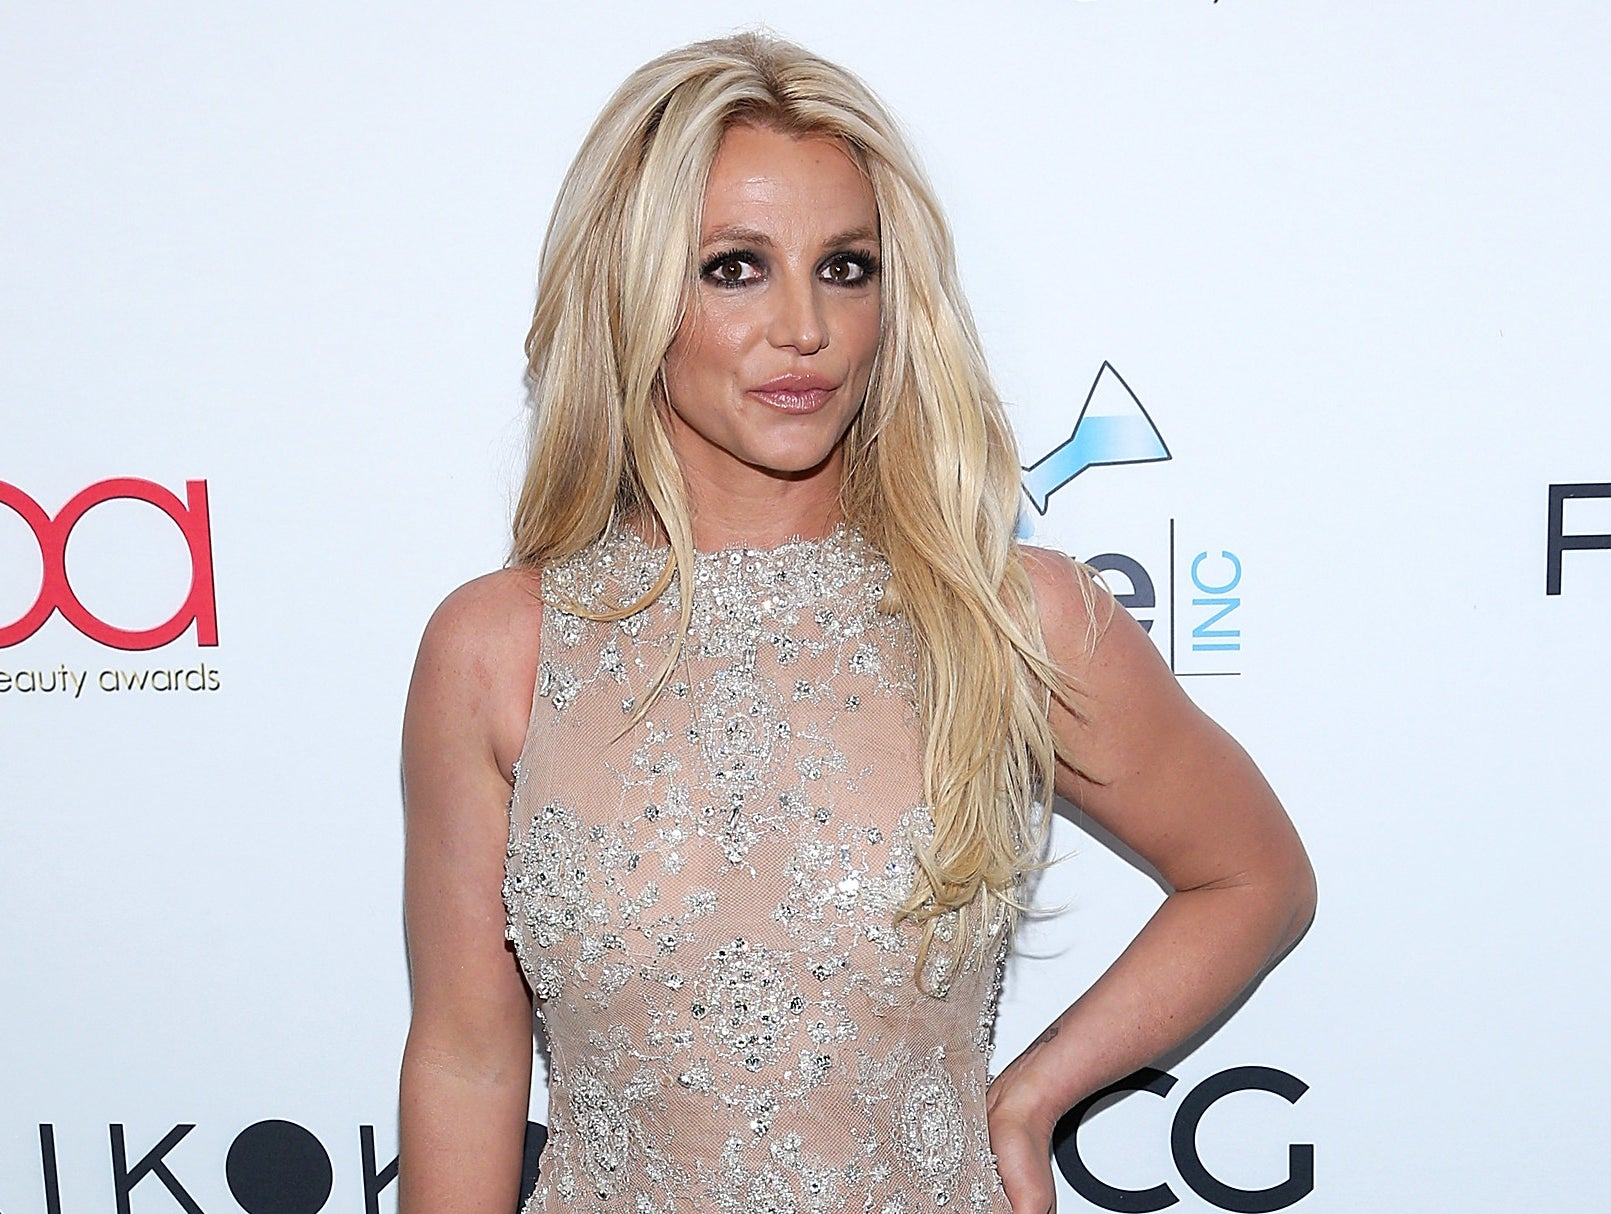 Britney wears a nude sleeveless dress with crystal detailing